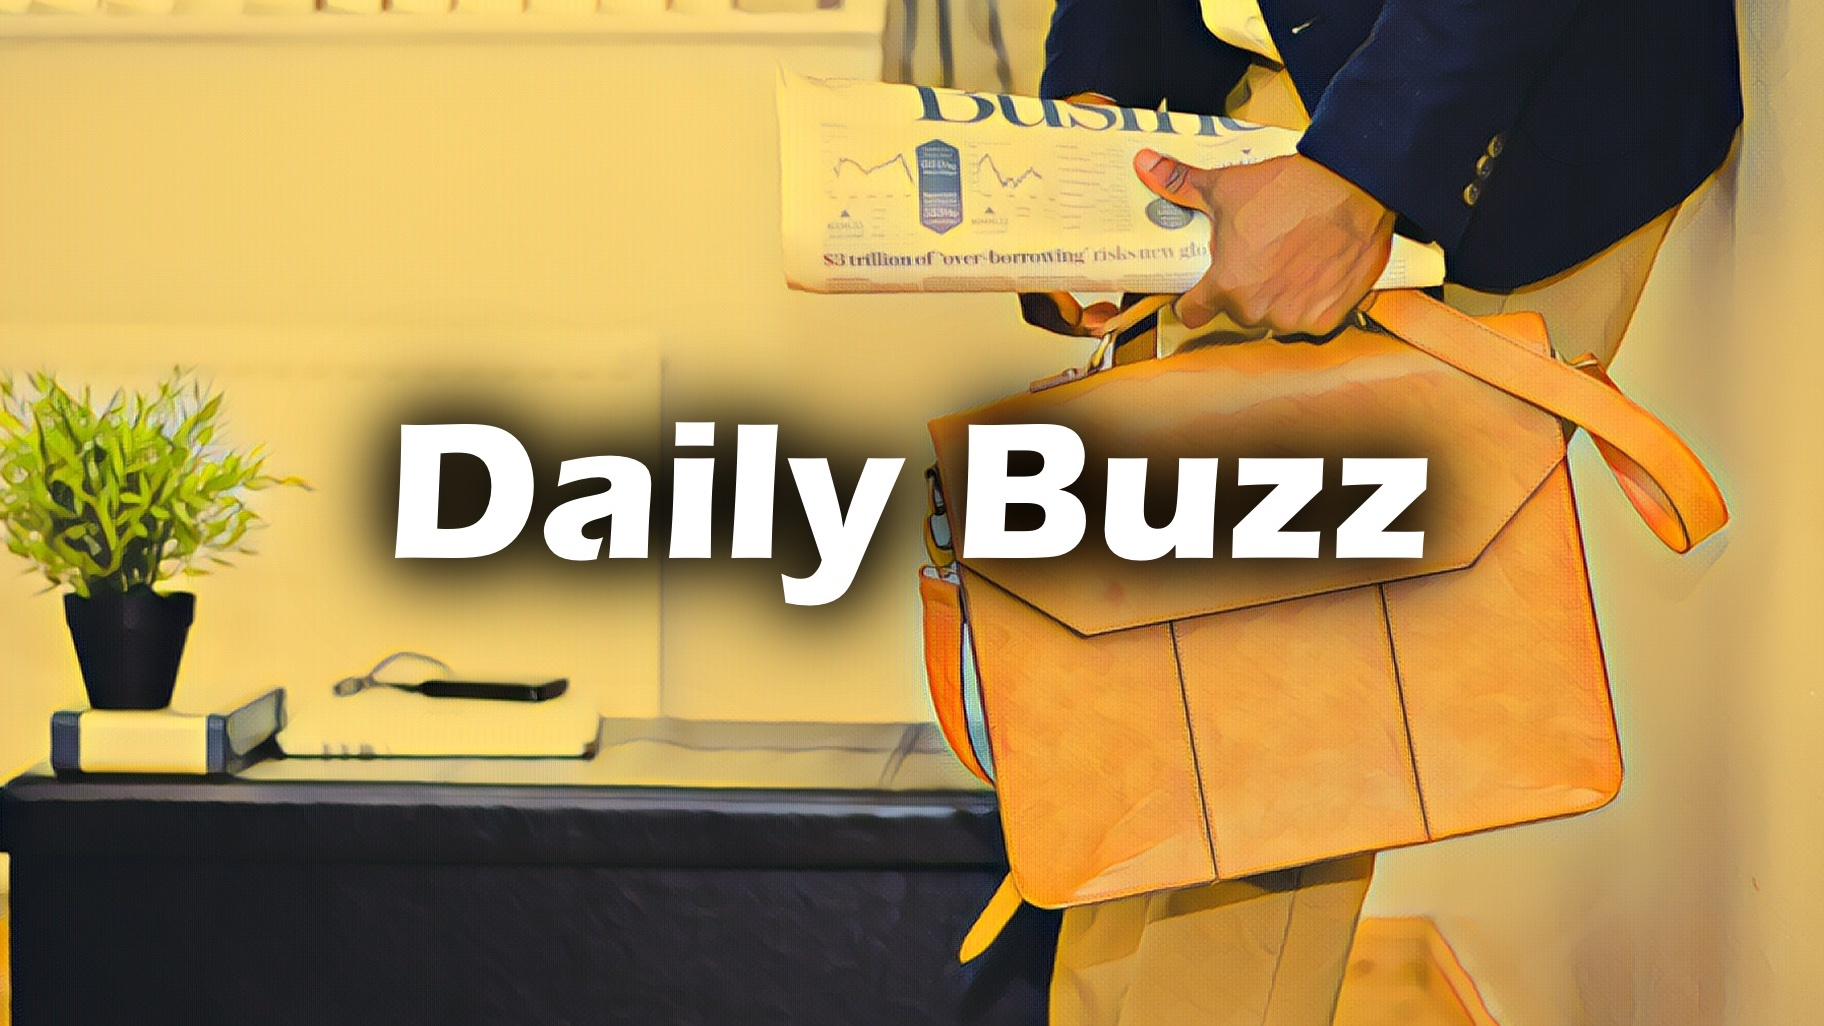 DailyBuzz Tuesday 10 July 2018